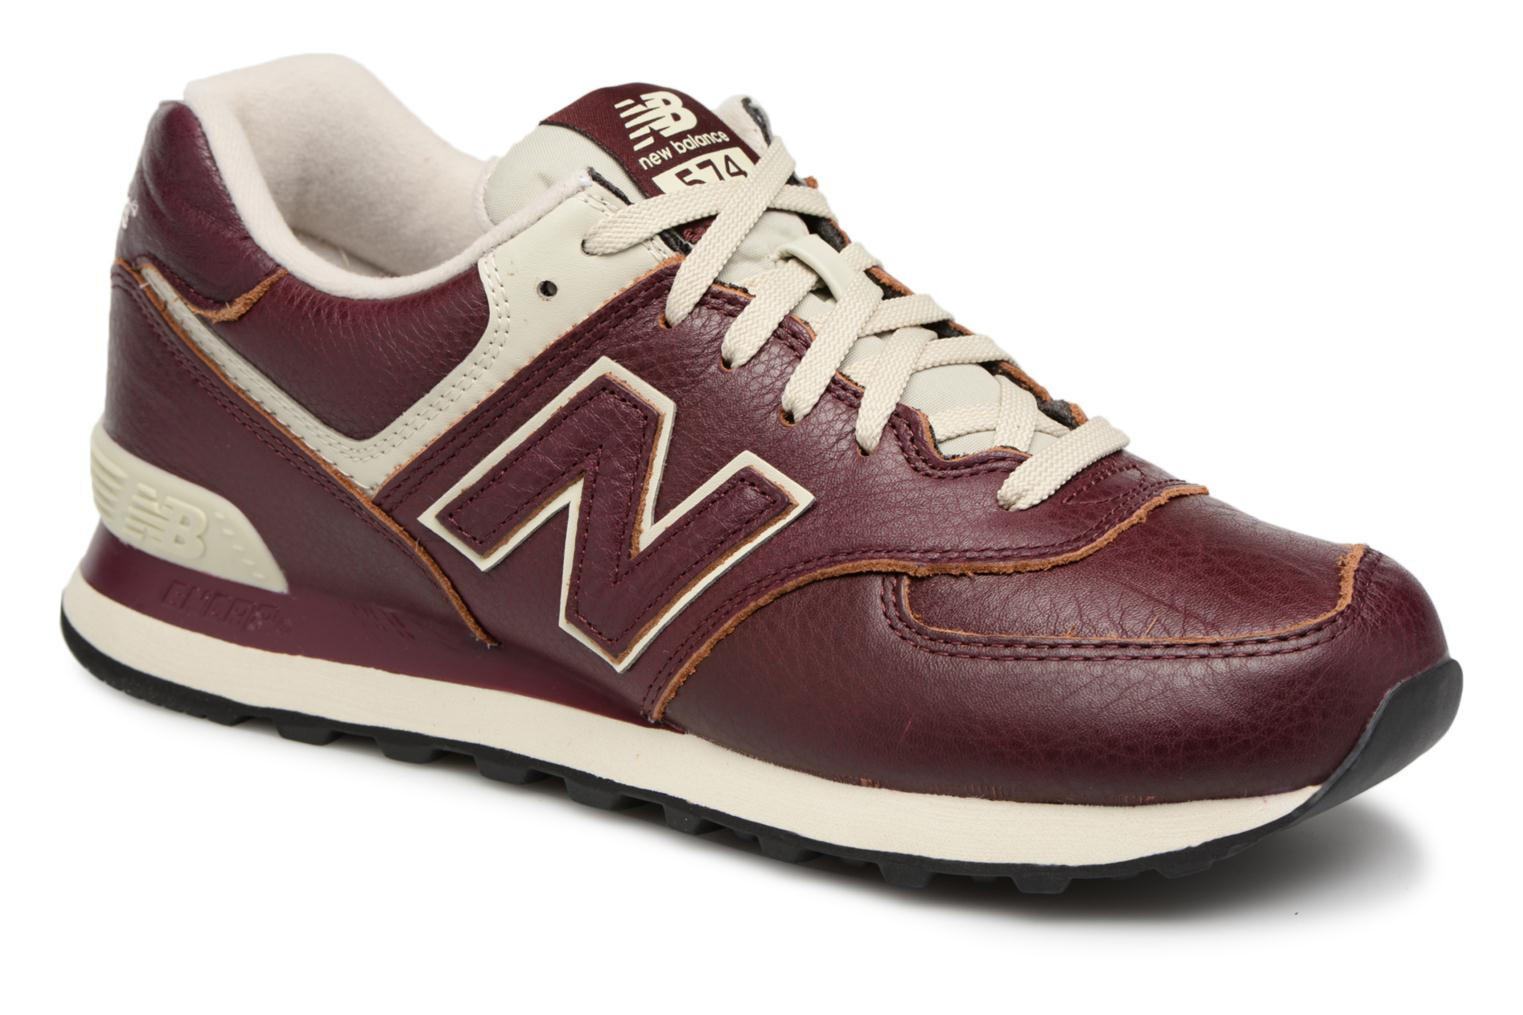 new balance old rose